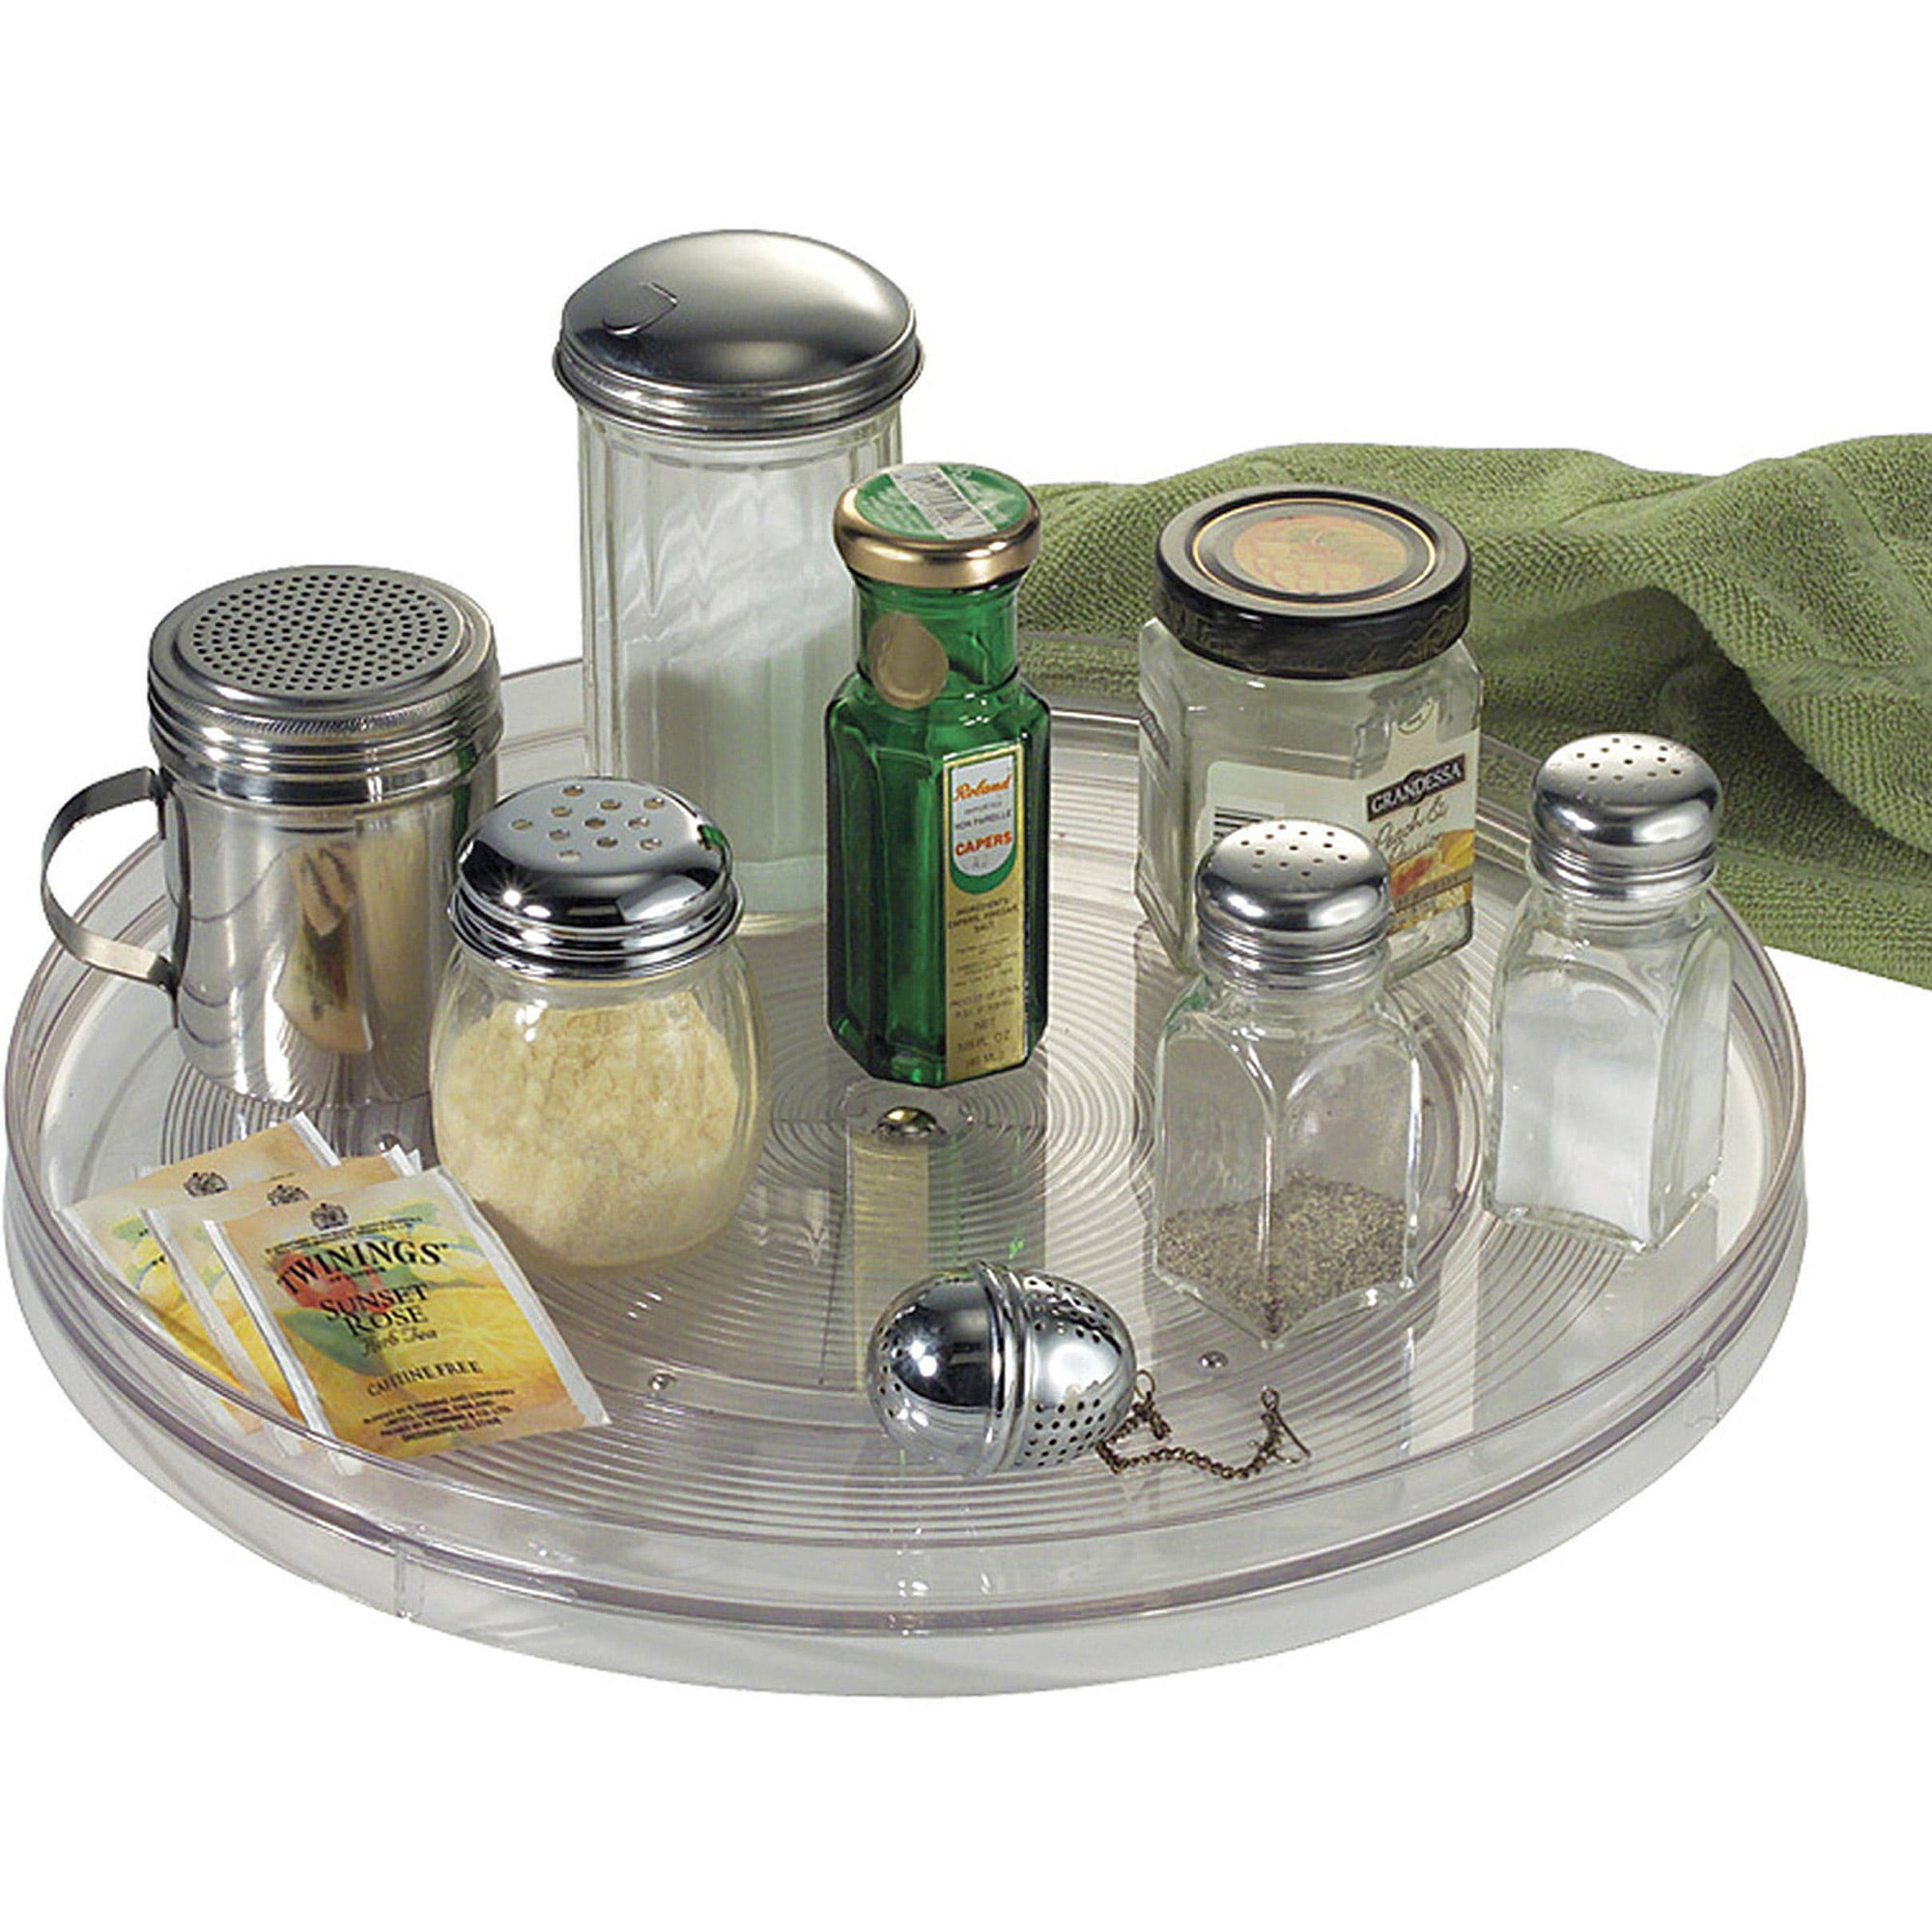 Interdesign linus lazy susan turntable spice organizer rack for kitchen pantry cabinet countertops 14 clear walmart com